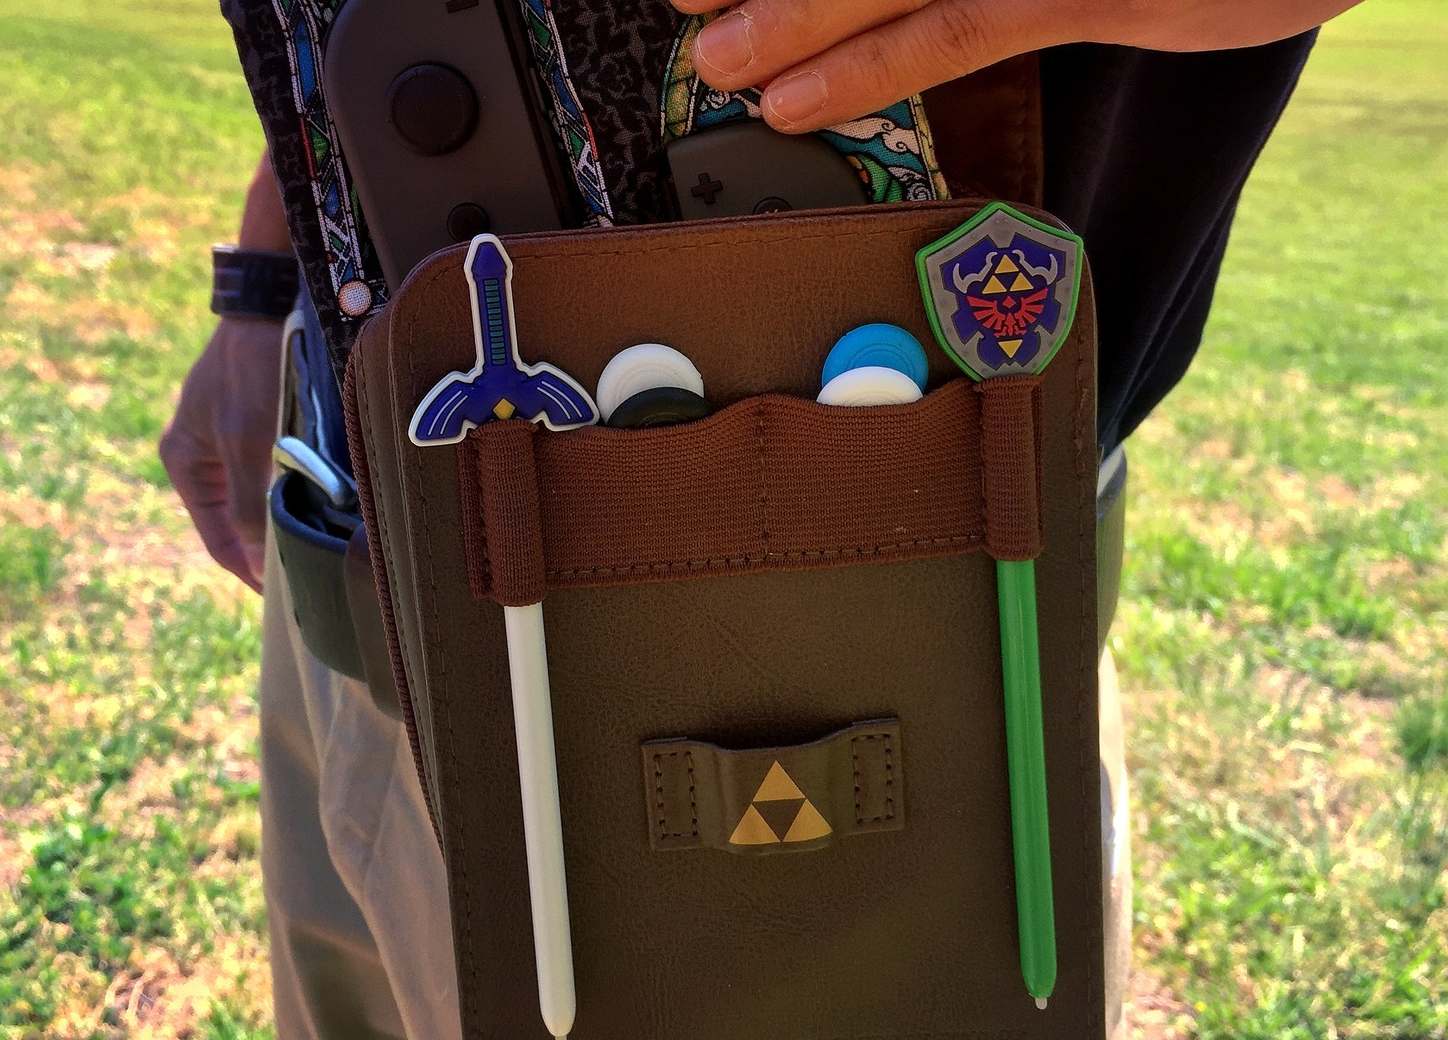 DIY Modders Are Using 3DS Cases To Carry Their Nintendo Switches Around